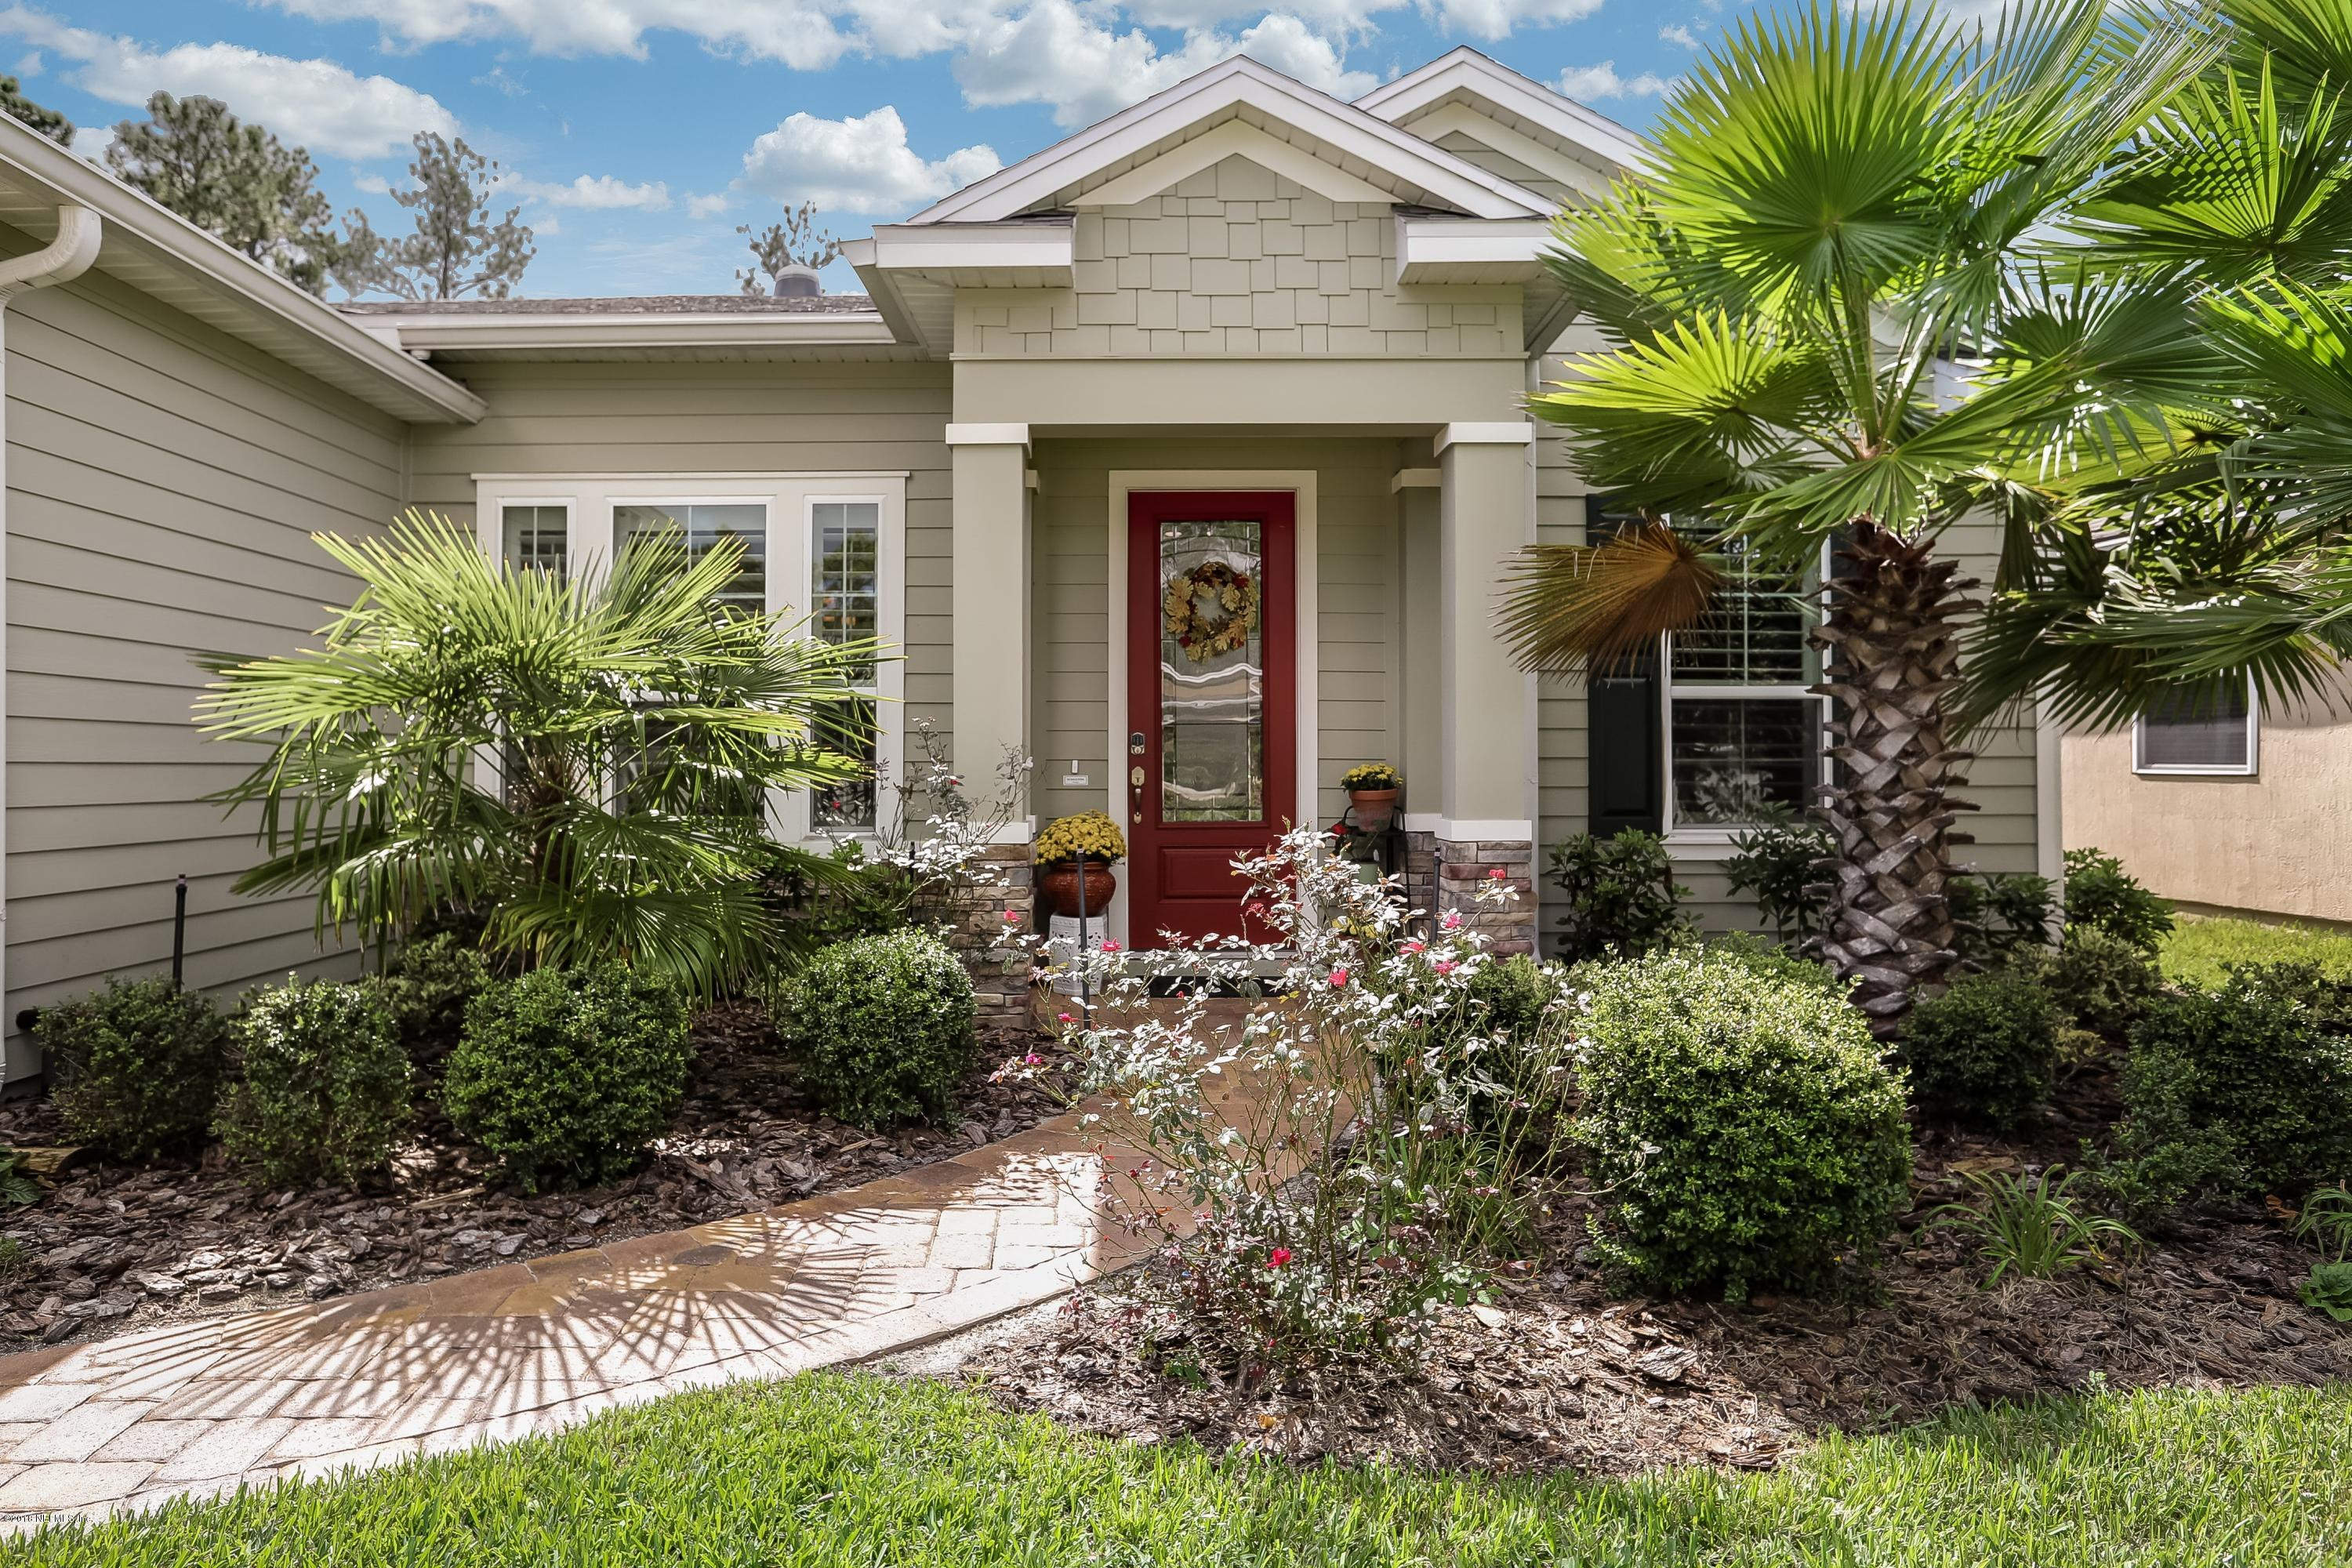 282 GRAY WOLF, JACKSONVILLE, FLORIDA 32081, 4 Bedrooms Bedrooms, ,2 BathroomsBathrooms,Residential - single family,For sale,GRAY WOLF,962668